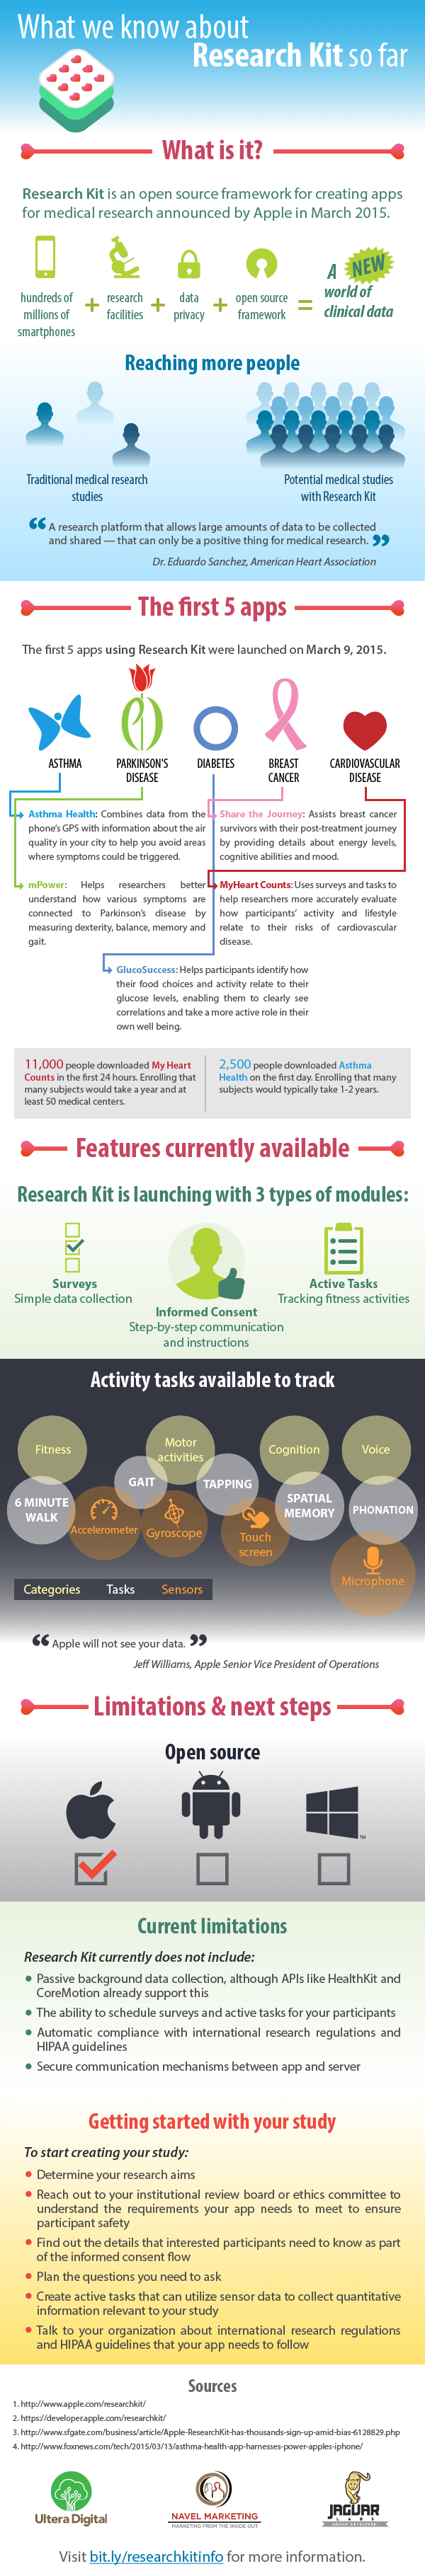 infographic_research_kit